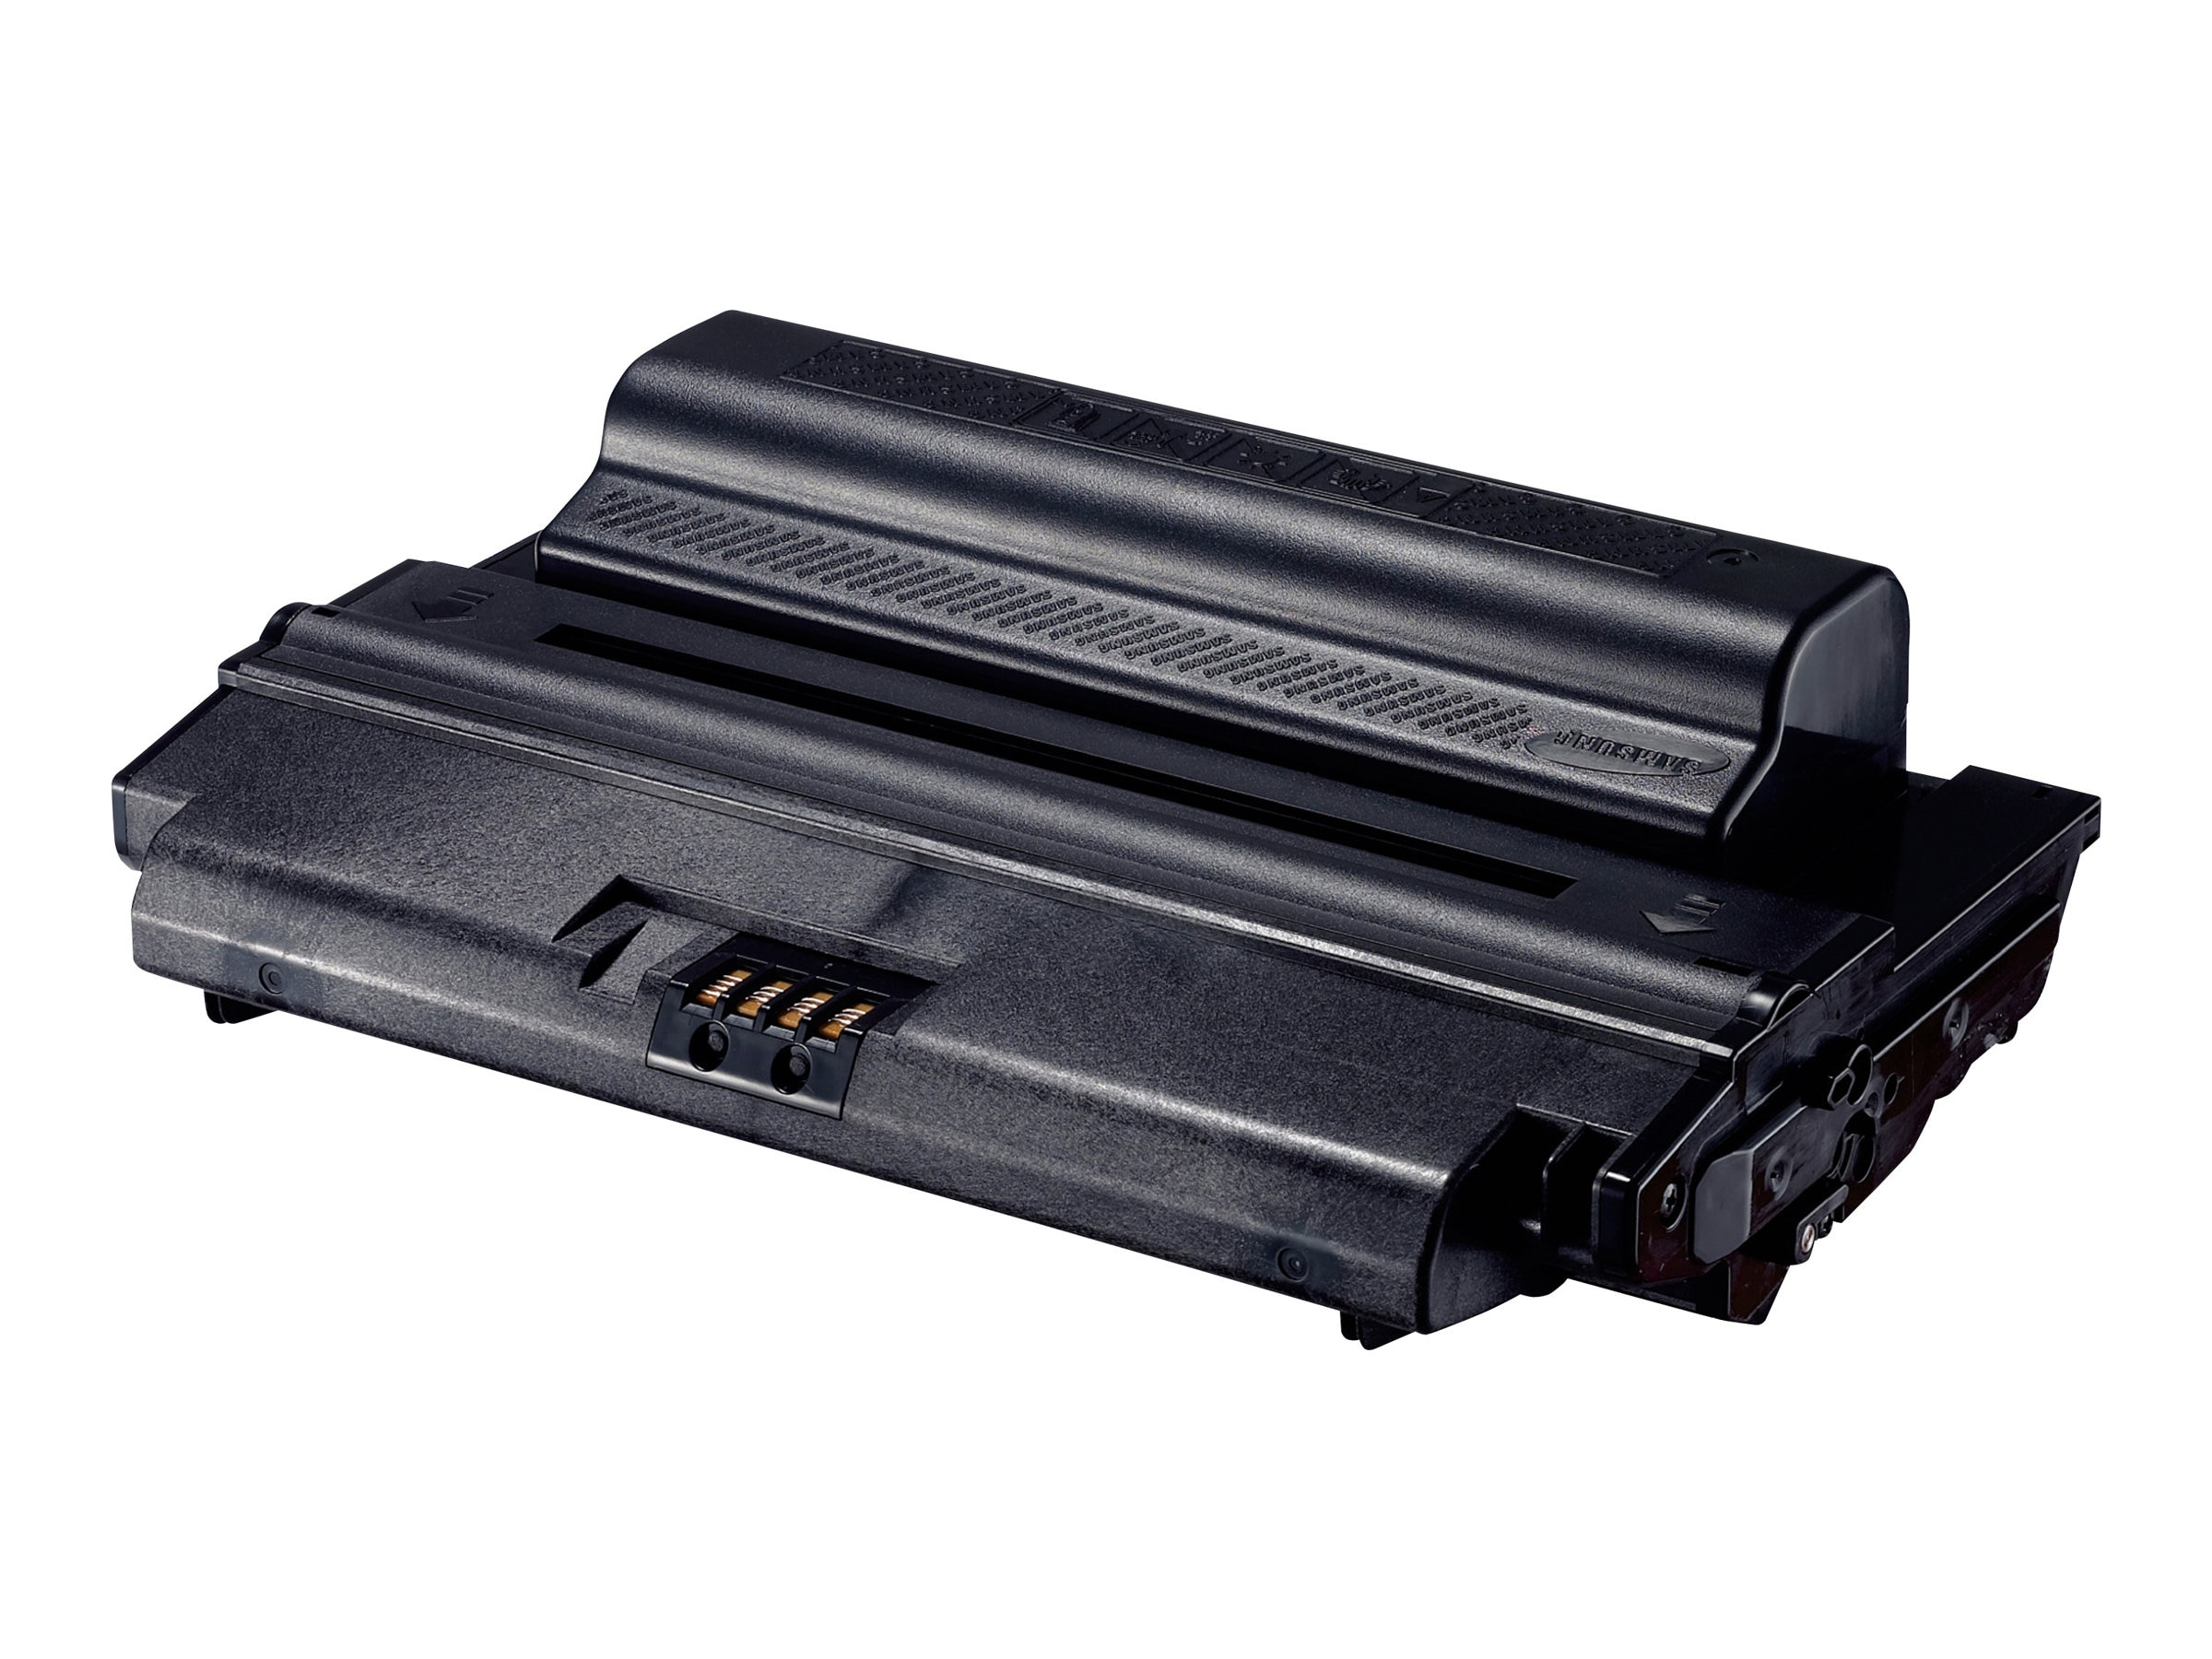 Samsung Black Toner Cartridge for ML-3470 Series Printers